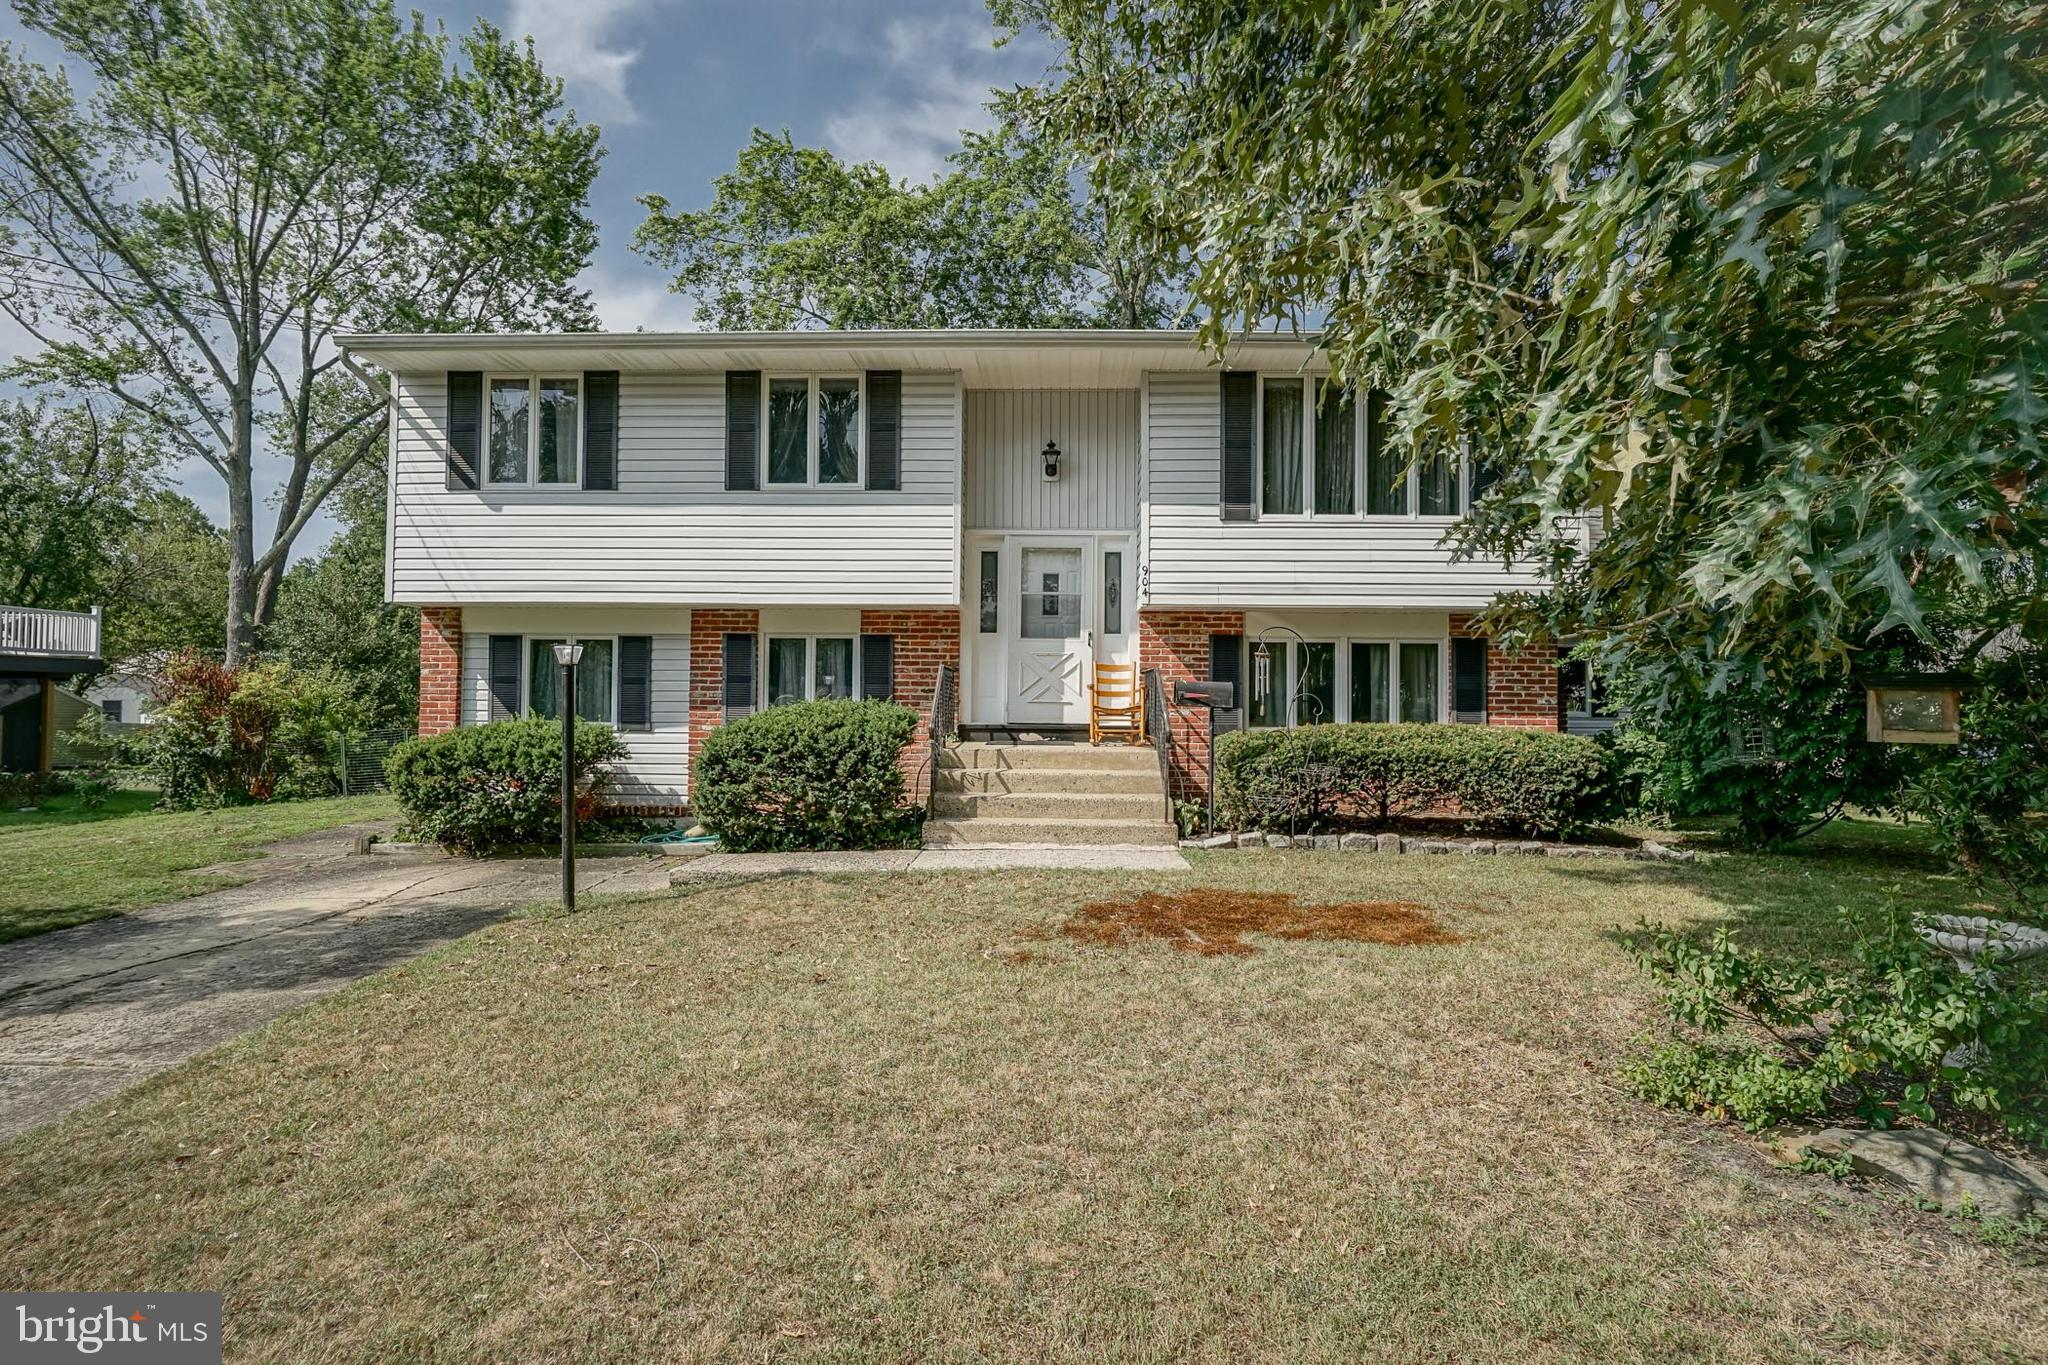 904 CEDAR AVENUE, PITMAN, NJ 08071